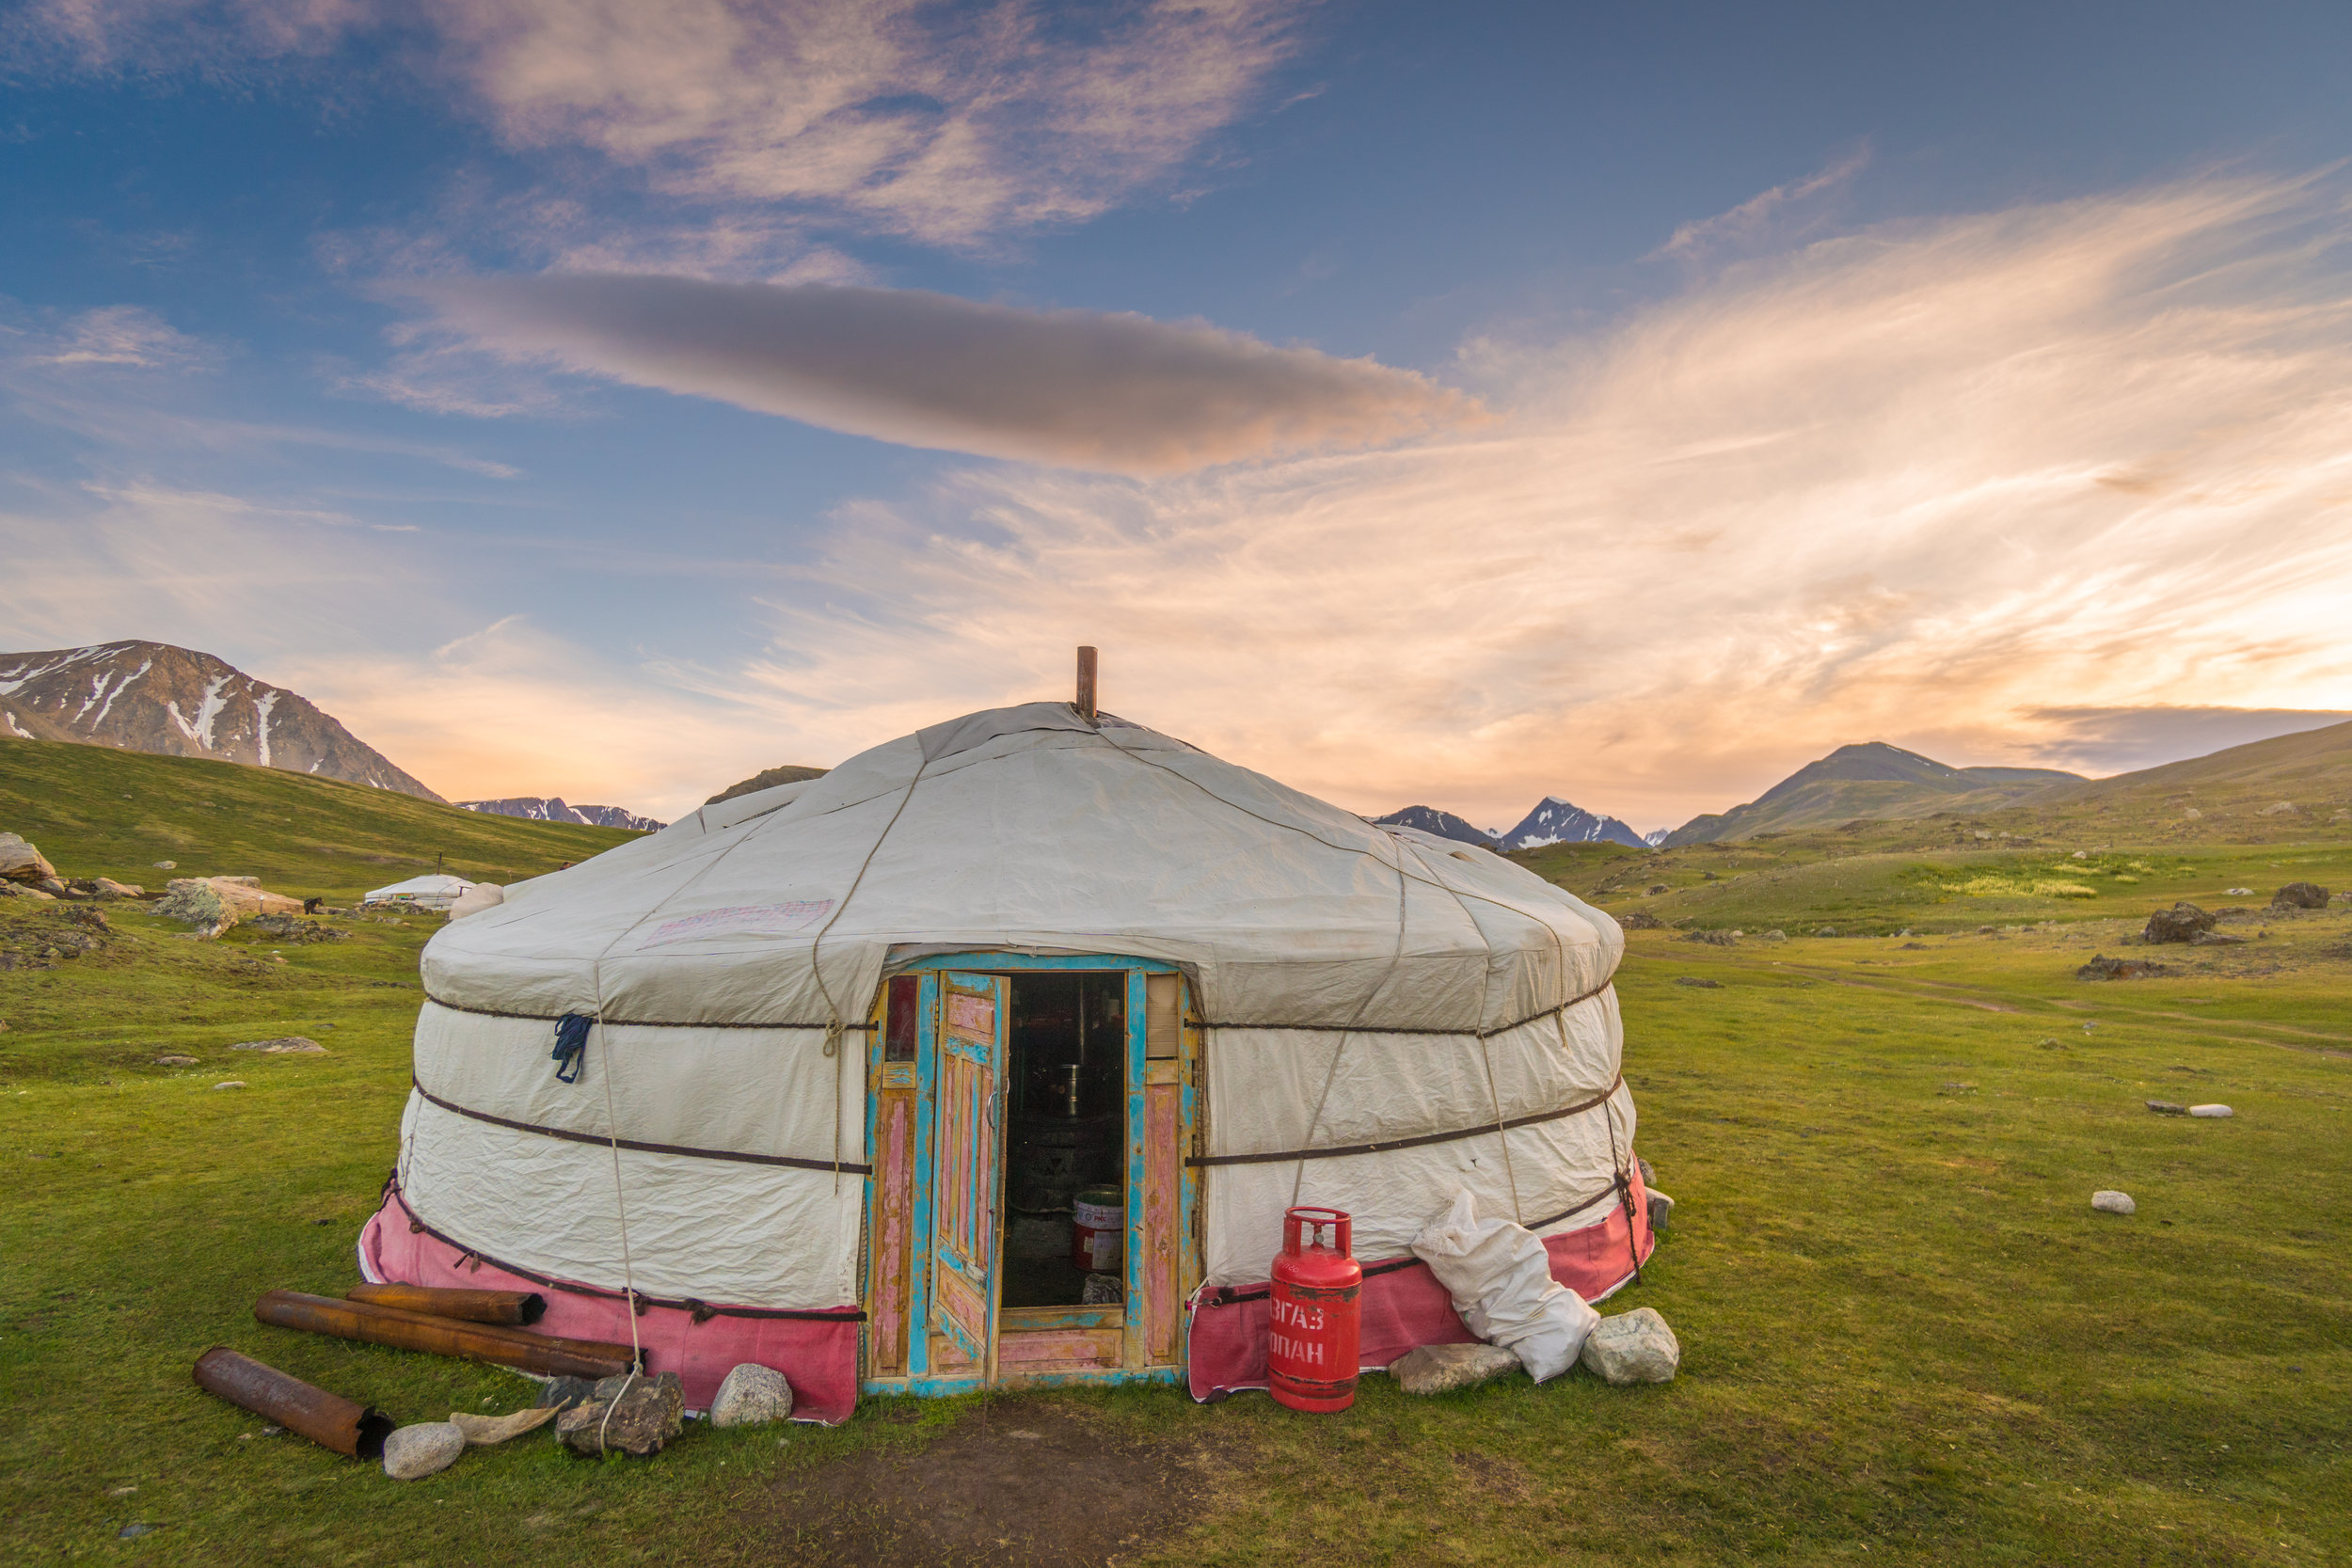 Western Monogolia - Deep in the Altai Mountains with the nomadic tribes of MongoliaJuly 2017